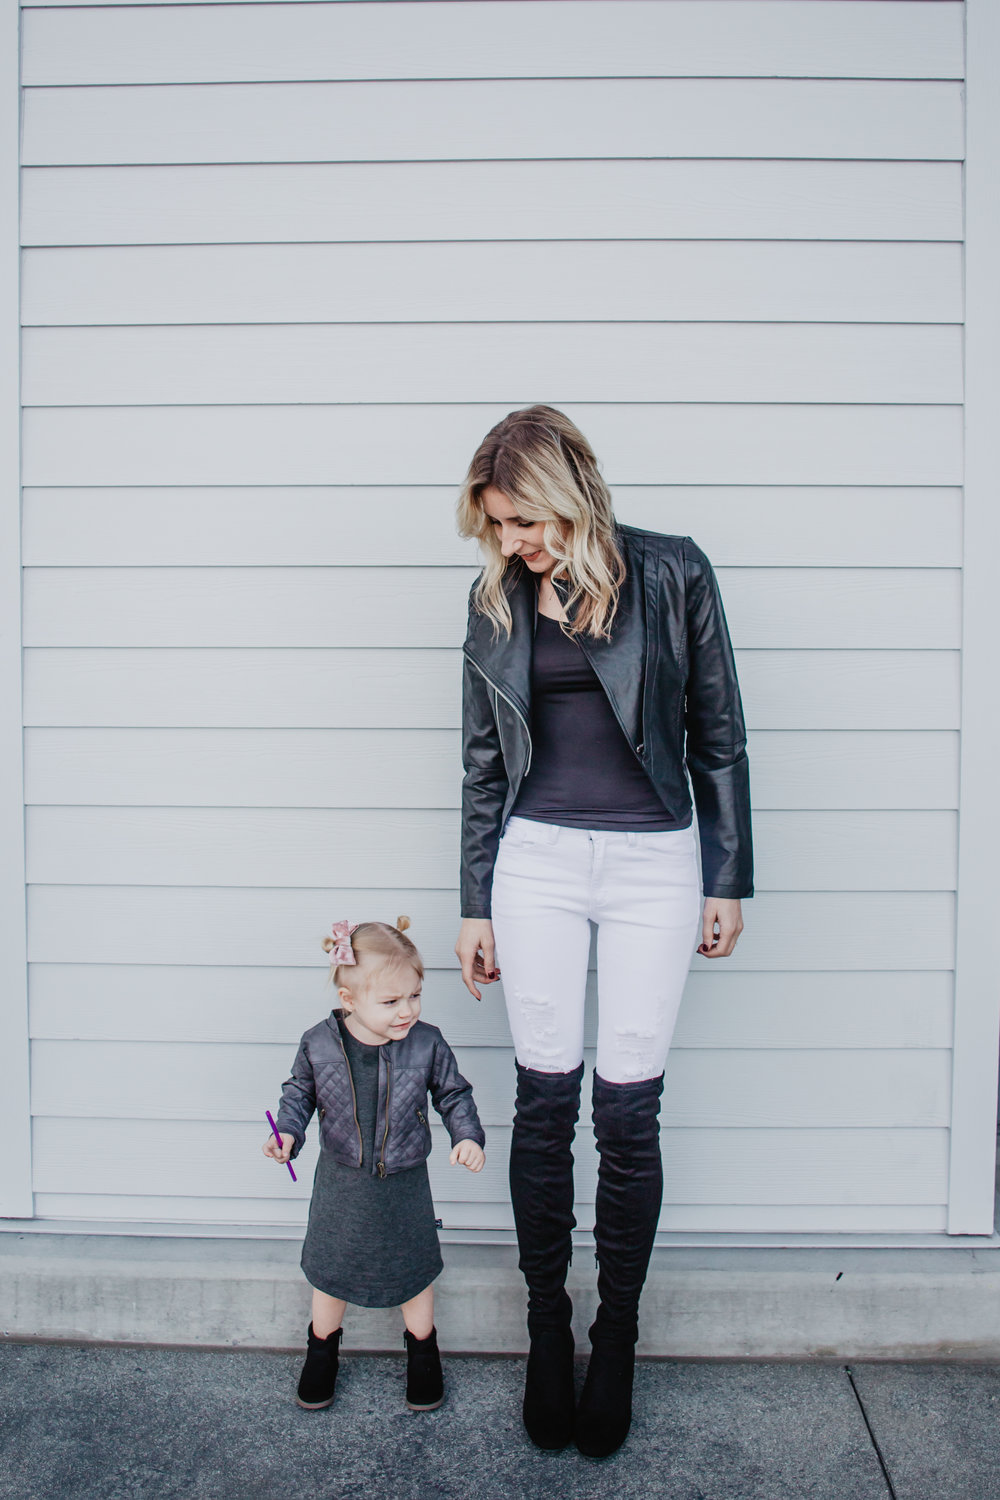 Baby-Kids Leather Jacket - Women's Black Leather Jacket - My 5 Favorite Mama Fashion Trends -- Mommy Fashion Blogger-Vlogger -- The Overwhelmed Mommy